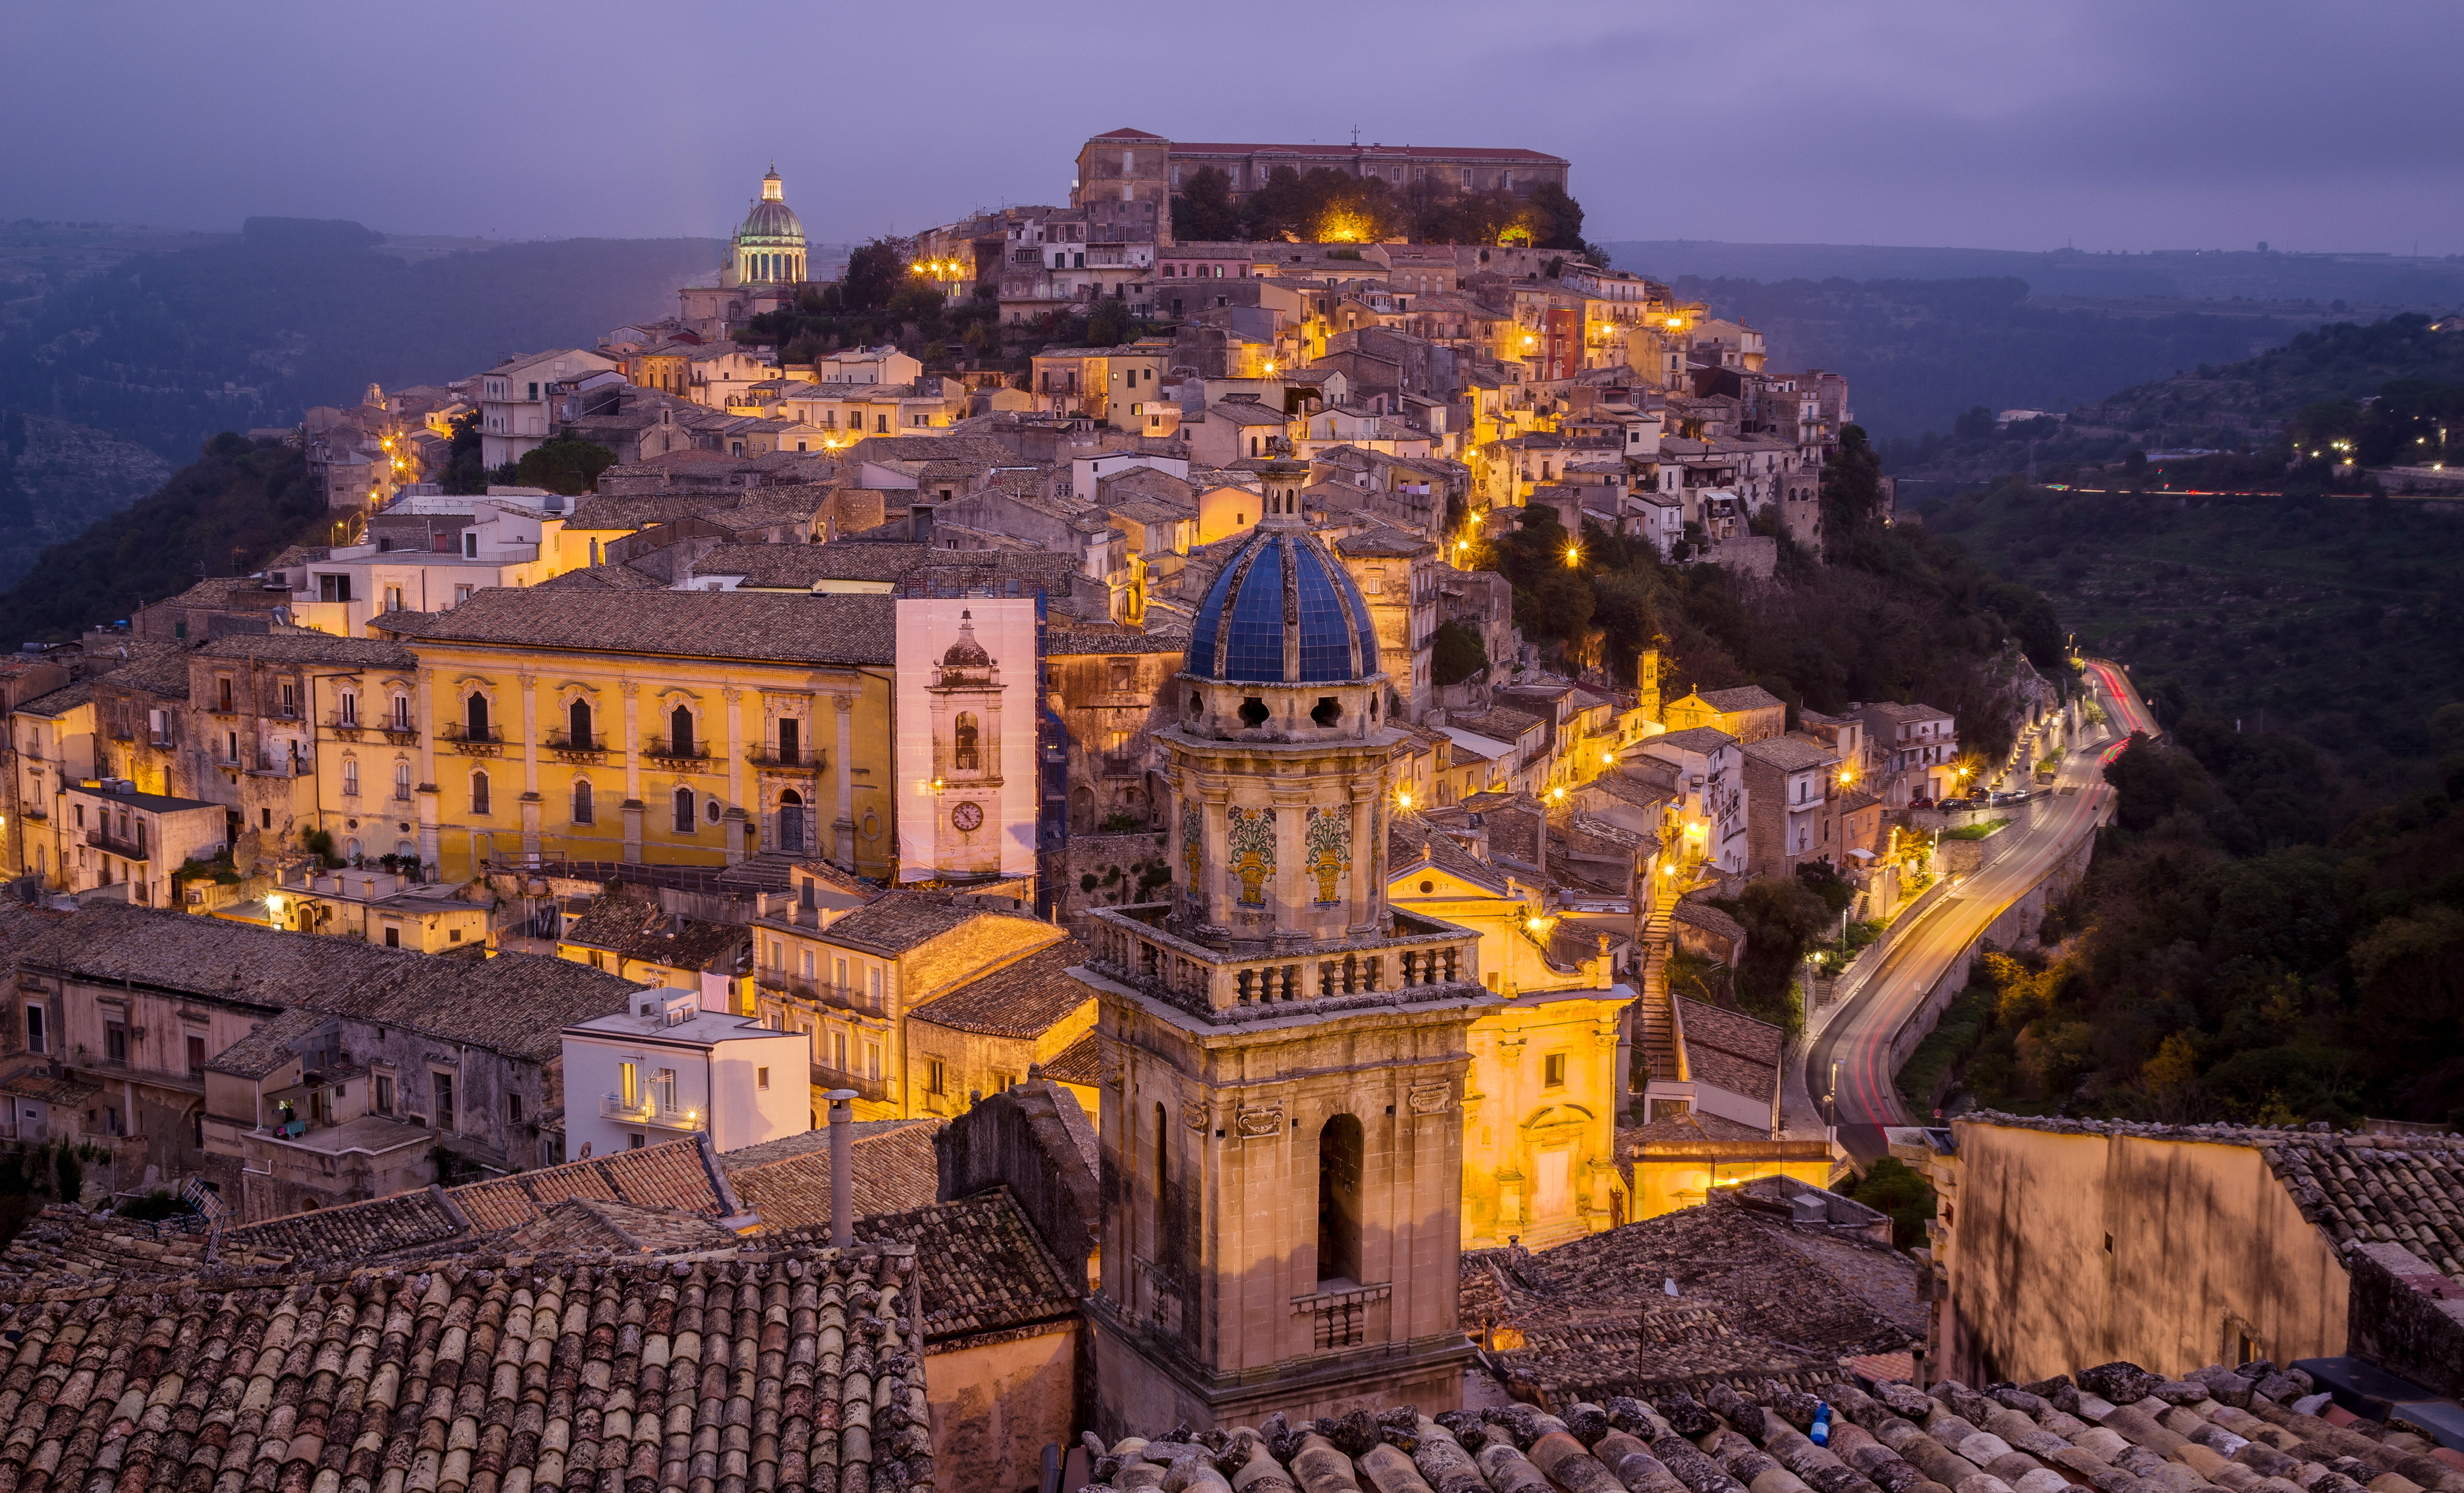 Town in sicily italy at night 4k ultra hd wallpaper and - Italy screensaver ...